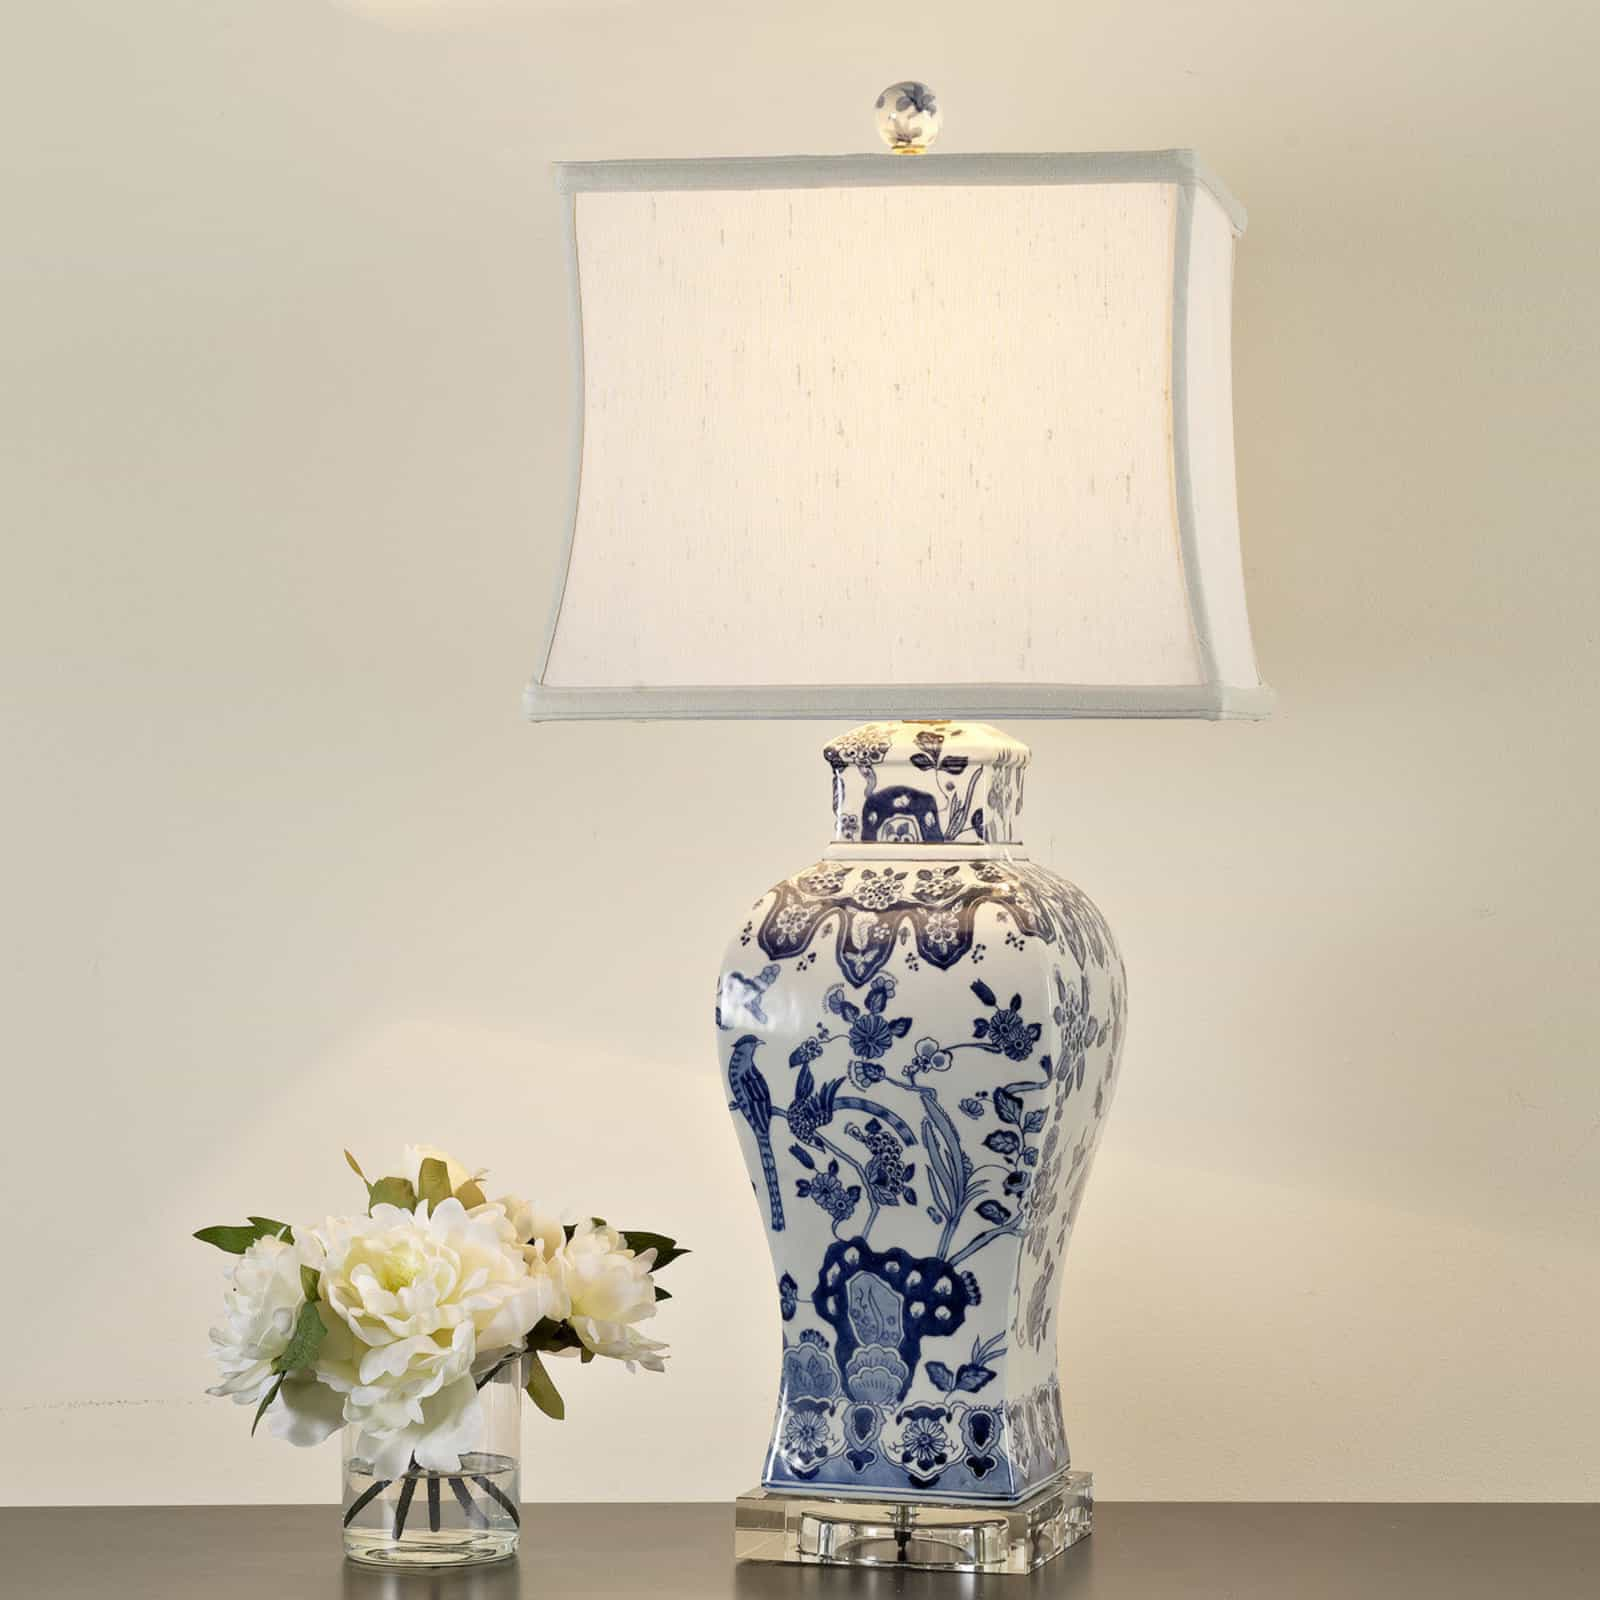 French Country Blue Lamps: 5 Ideas Of Country Ceramic Table Lamps